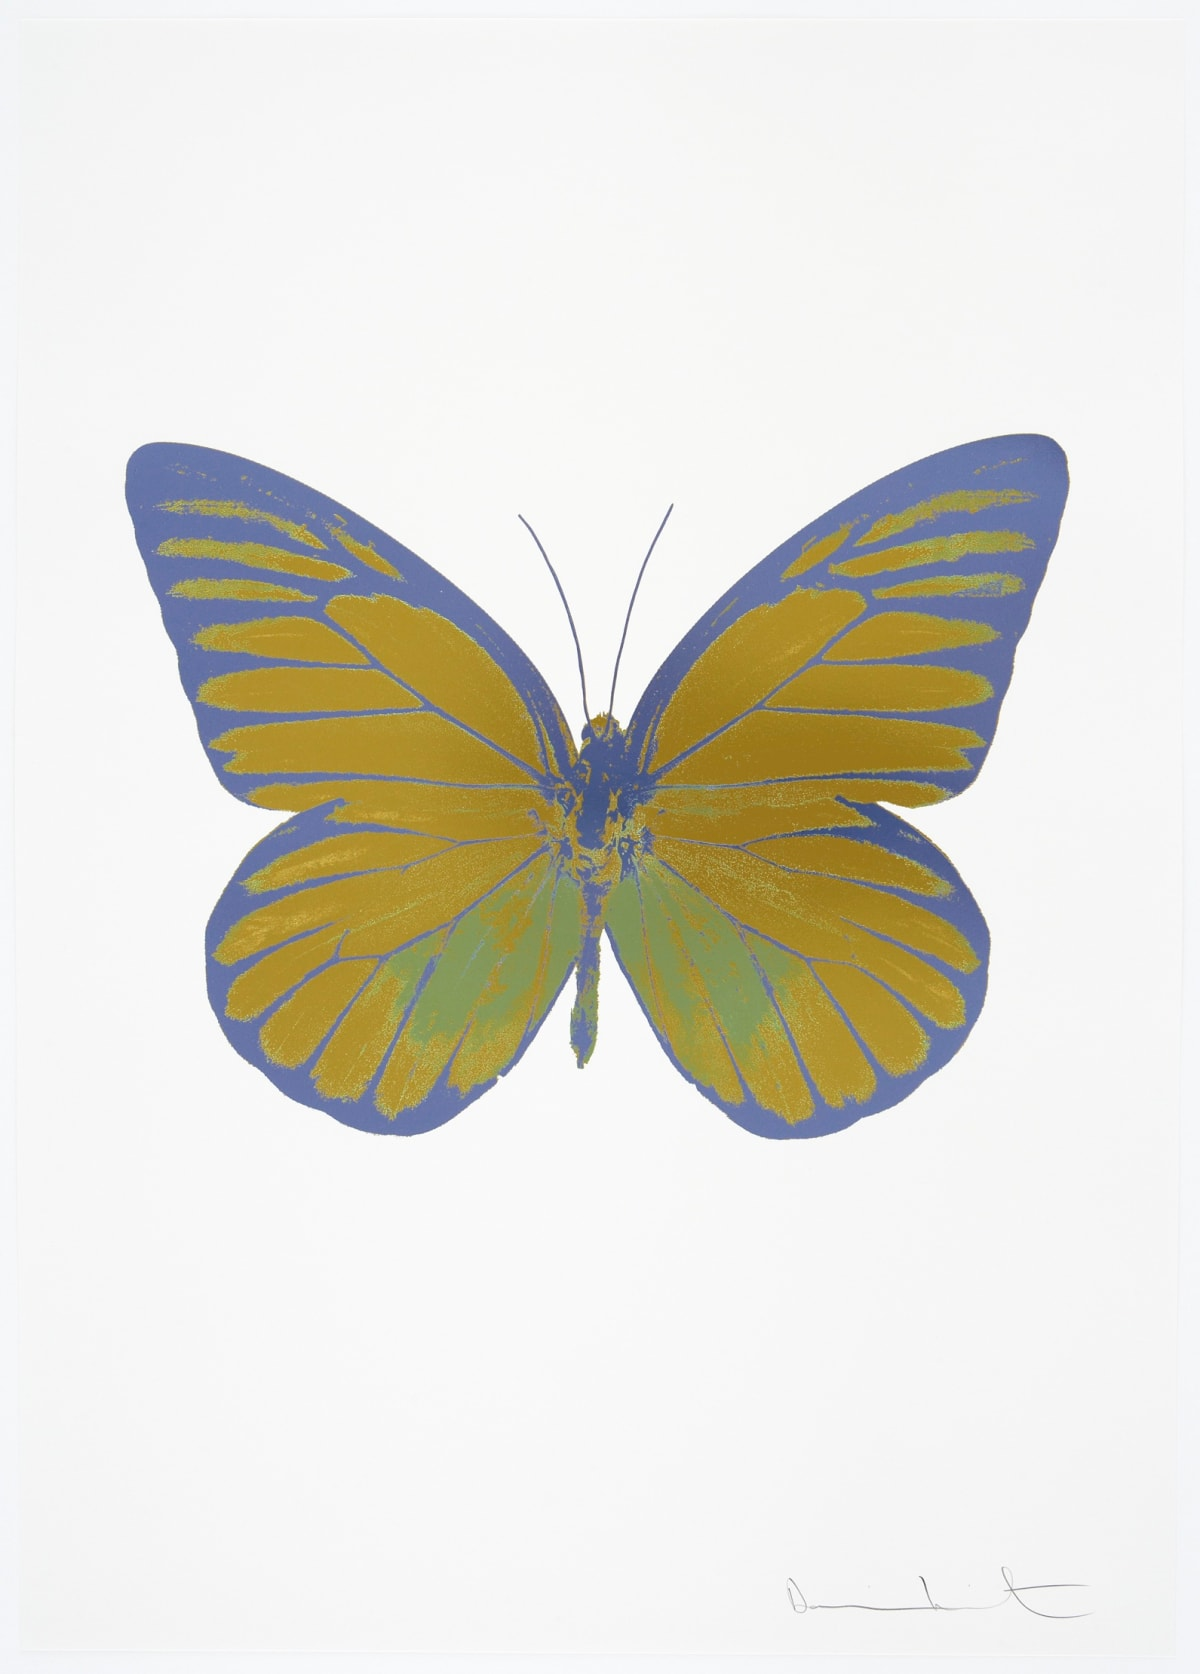 Damien Hirst The Souls I - Oriental Gold/Leaf Green/Cornflower Blue, 2010 3 colour foil block on 300gsm Arches 88 archival paper. Signed and numbered. Published by Paul Stolper and Other Criteria 72 x 51cm OC7760 / 659-23 Edition of 15